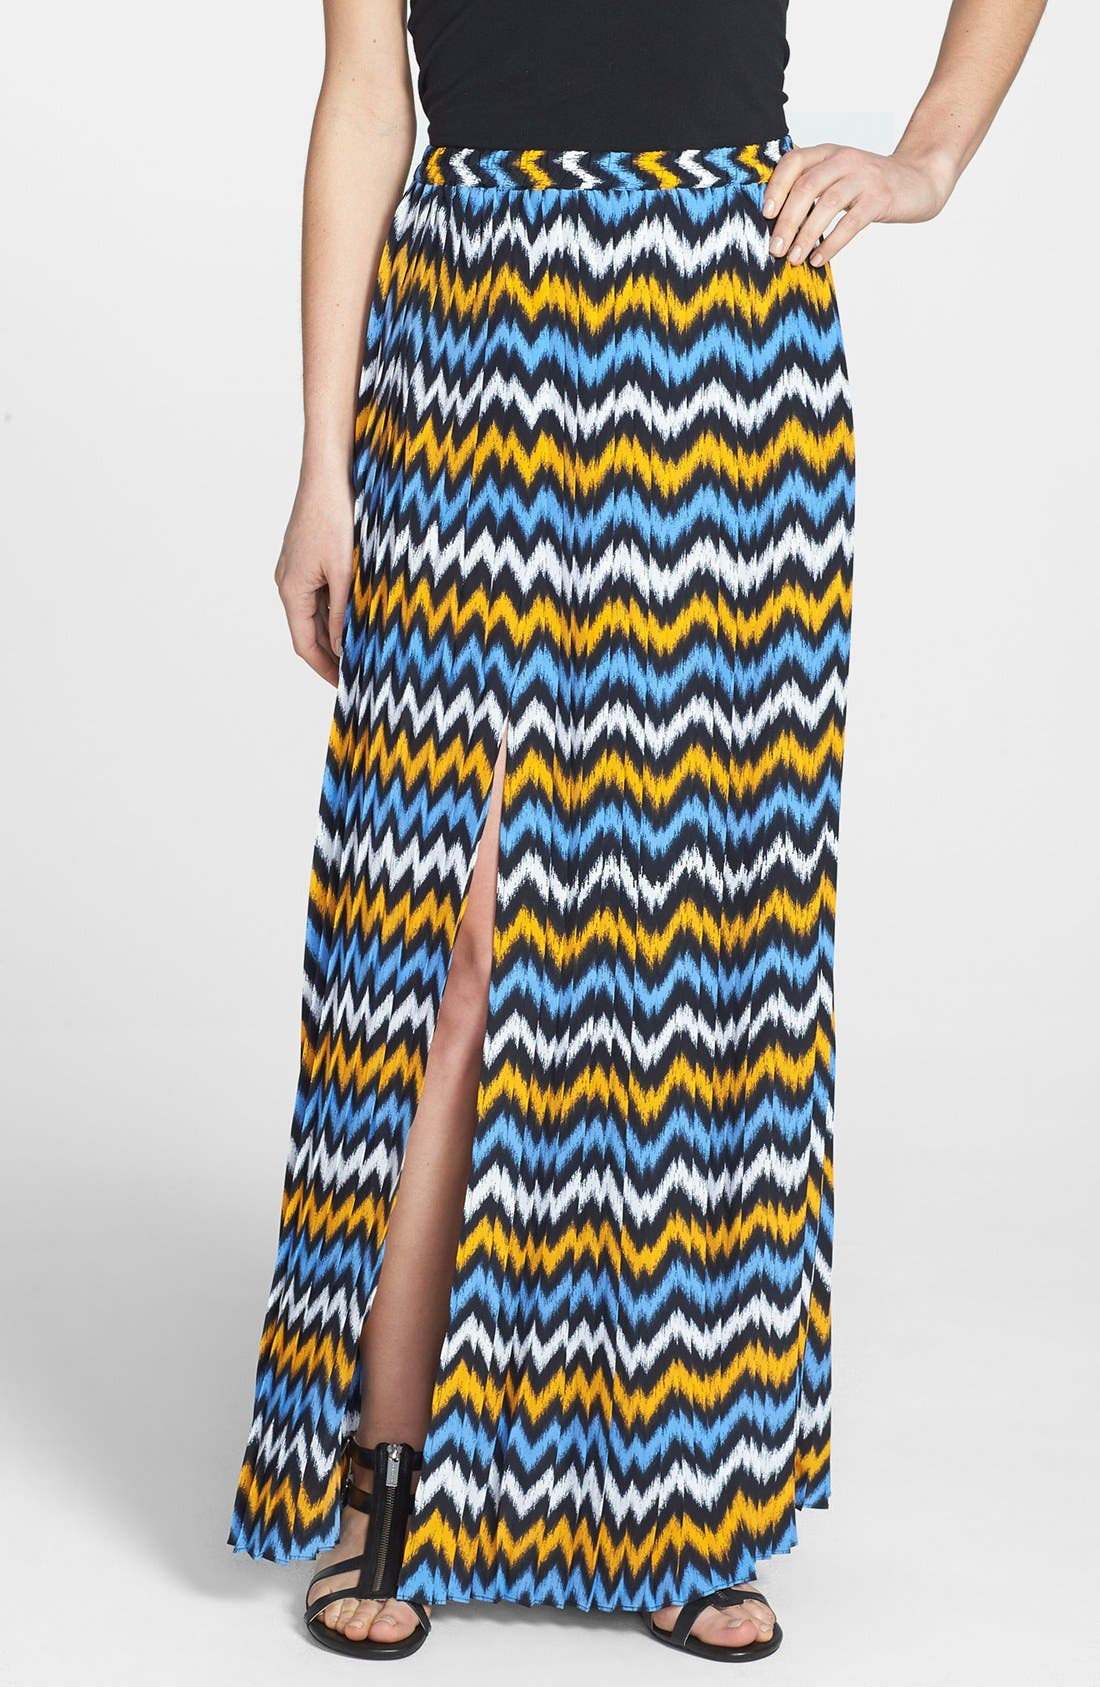 Alternate Image 1 Selected - MICHAEL Michael Kors Ikat Print Pleat Maxi Skirt (Regular & Petite)